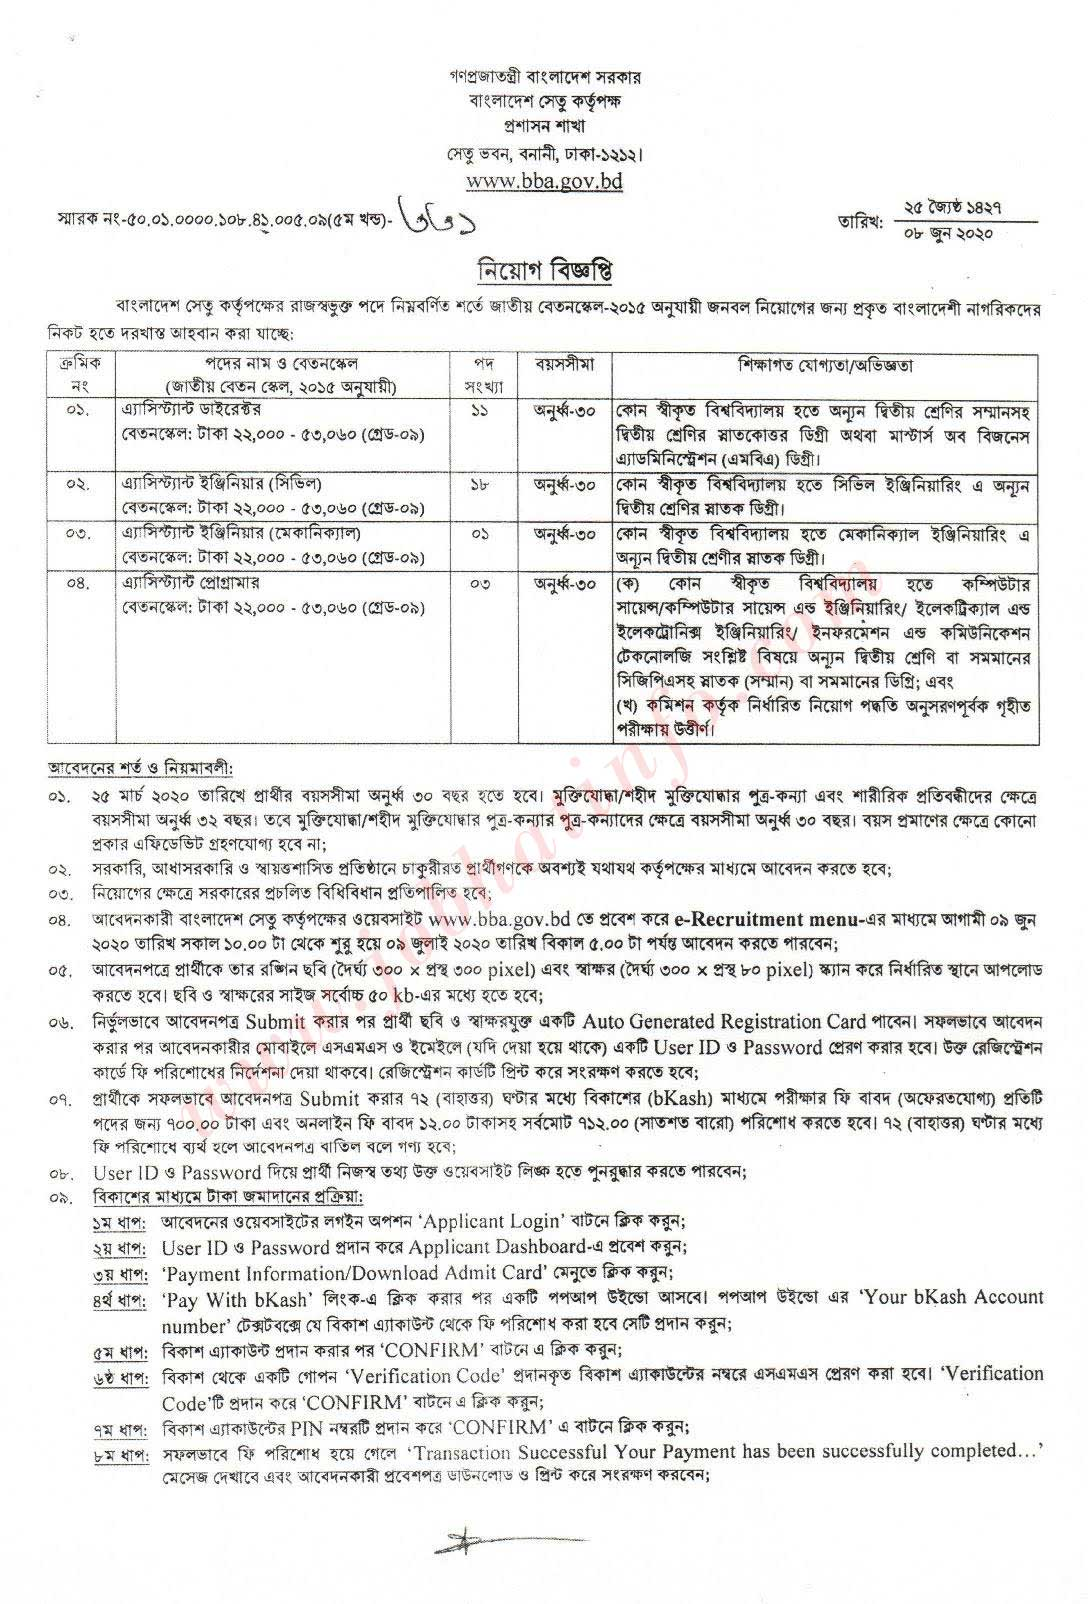 Bangladesh Bridge Authority Job Circular 2020.- bba.gov.bd 2